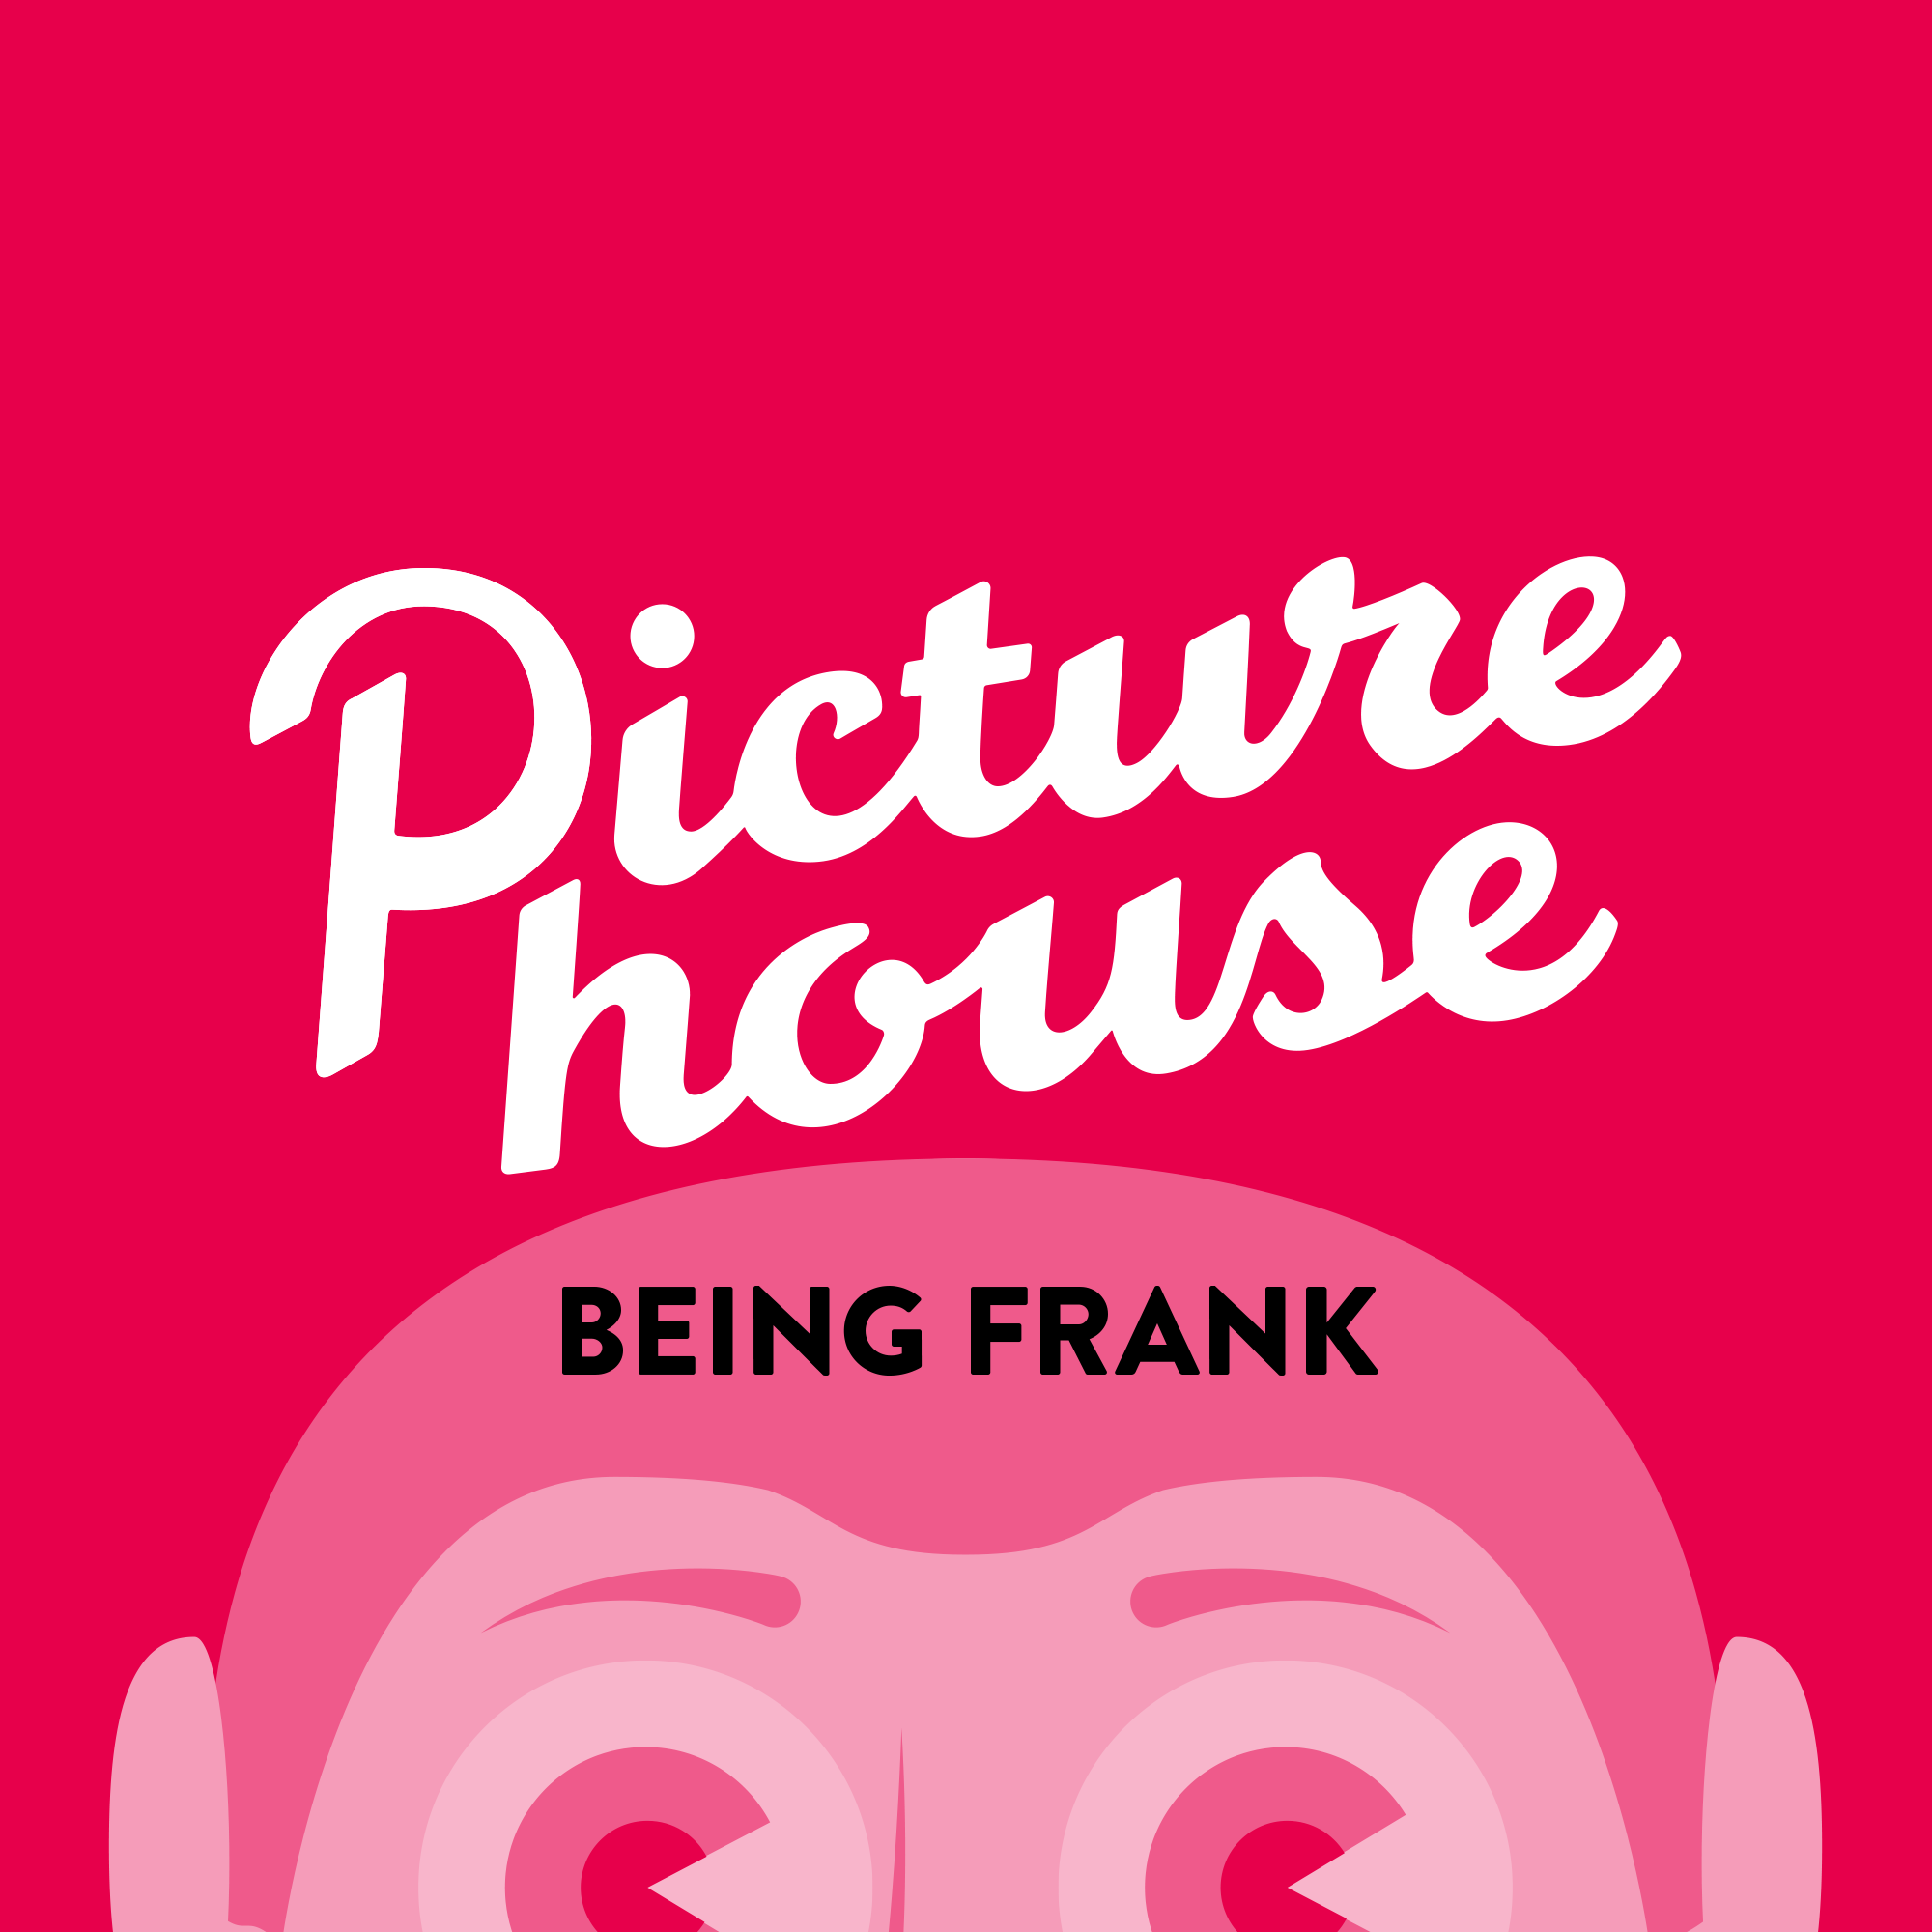 Being Frank: The Chris Sievey Story with Steve Sullivan | Picturehouse Podcast